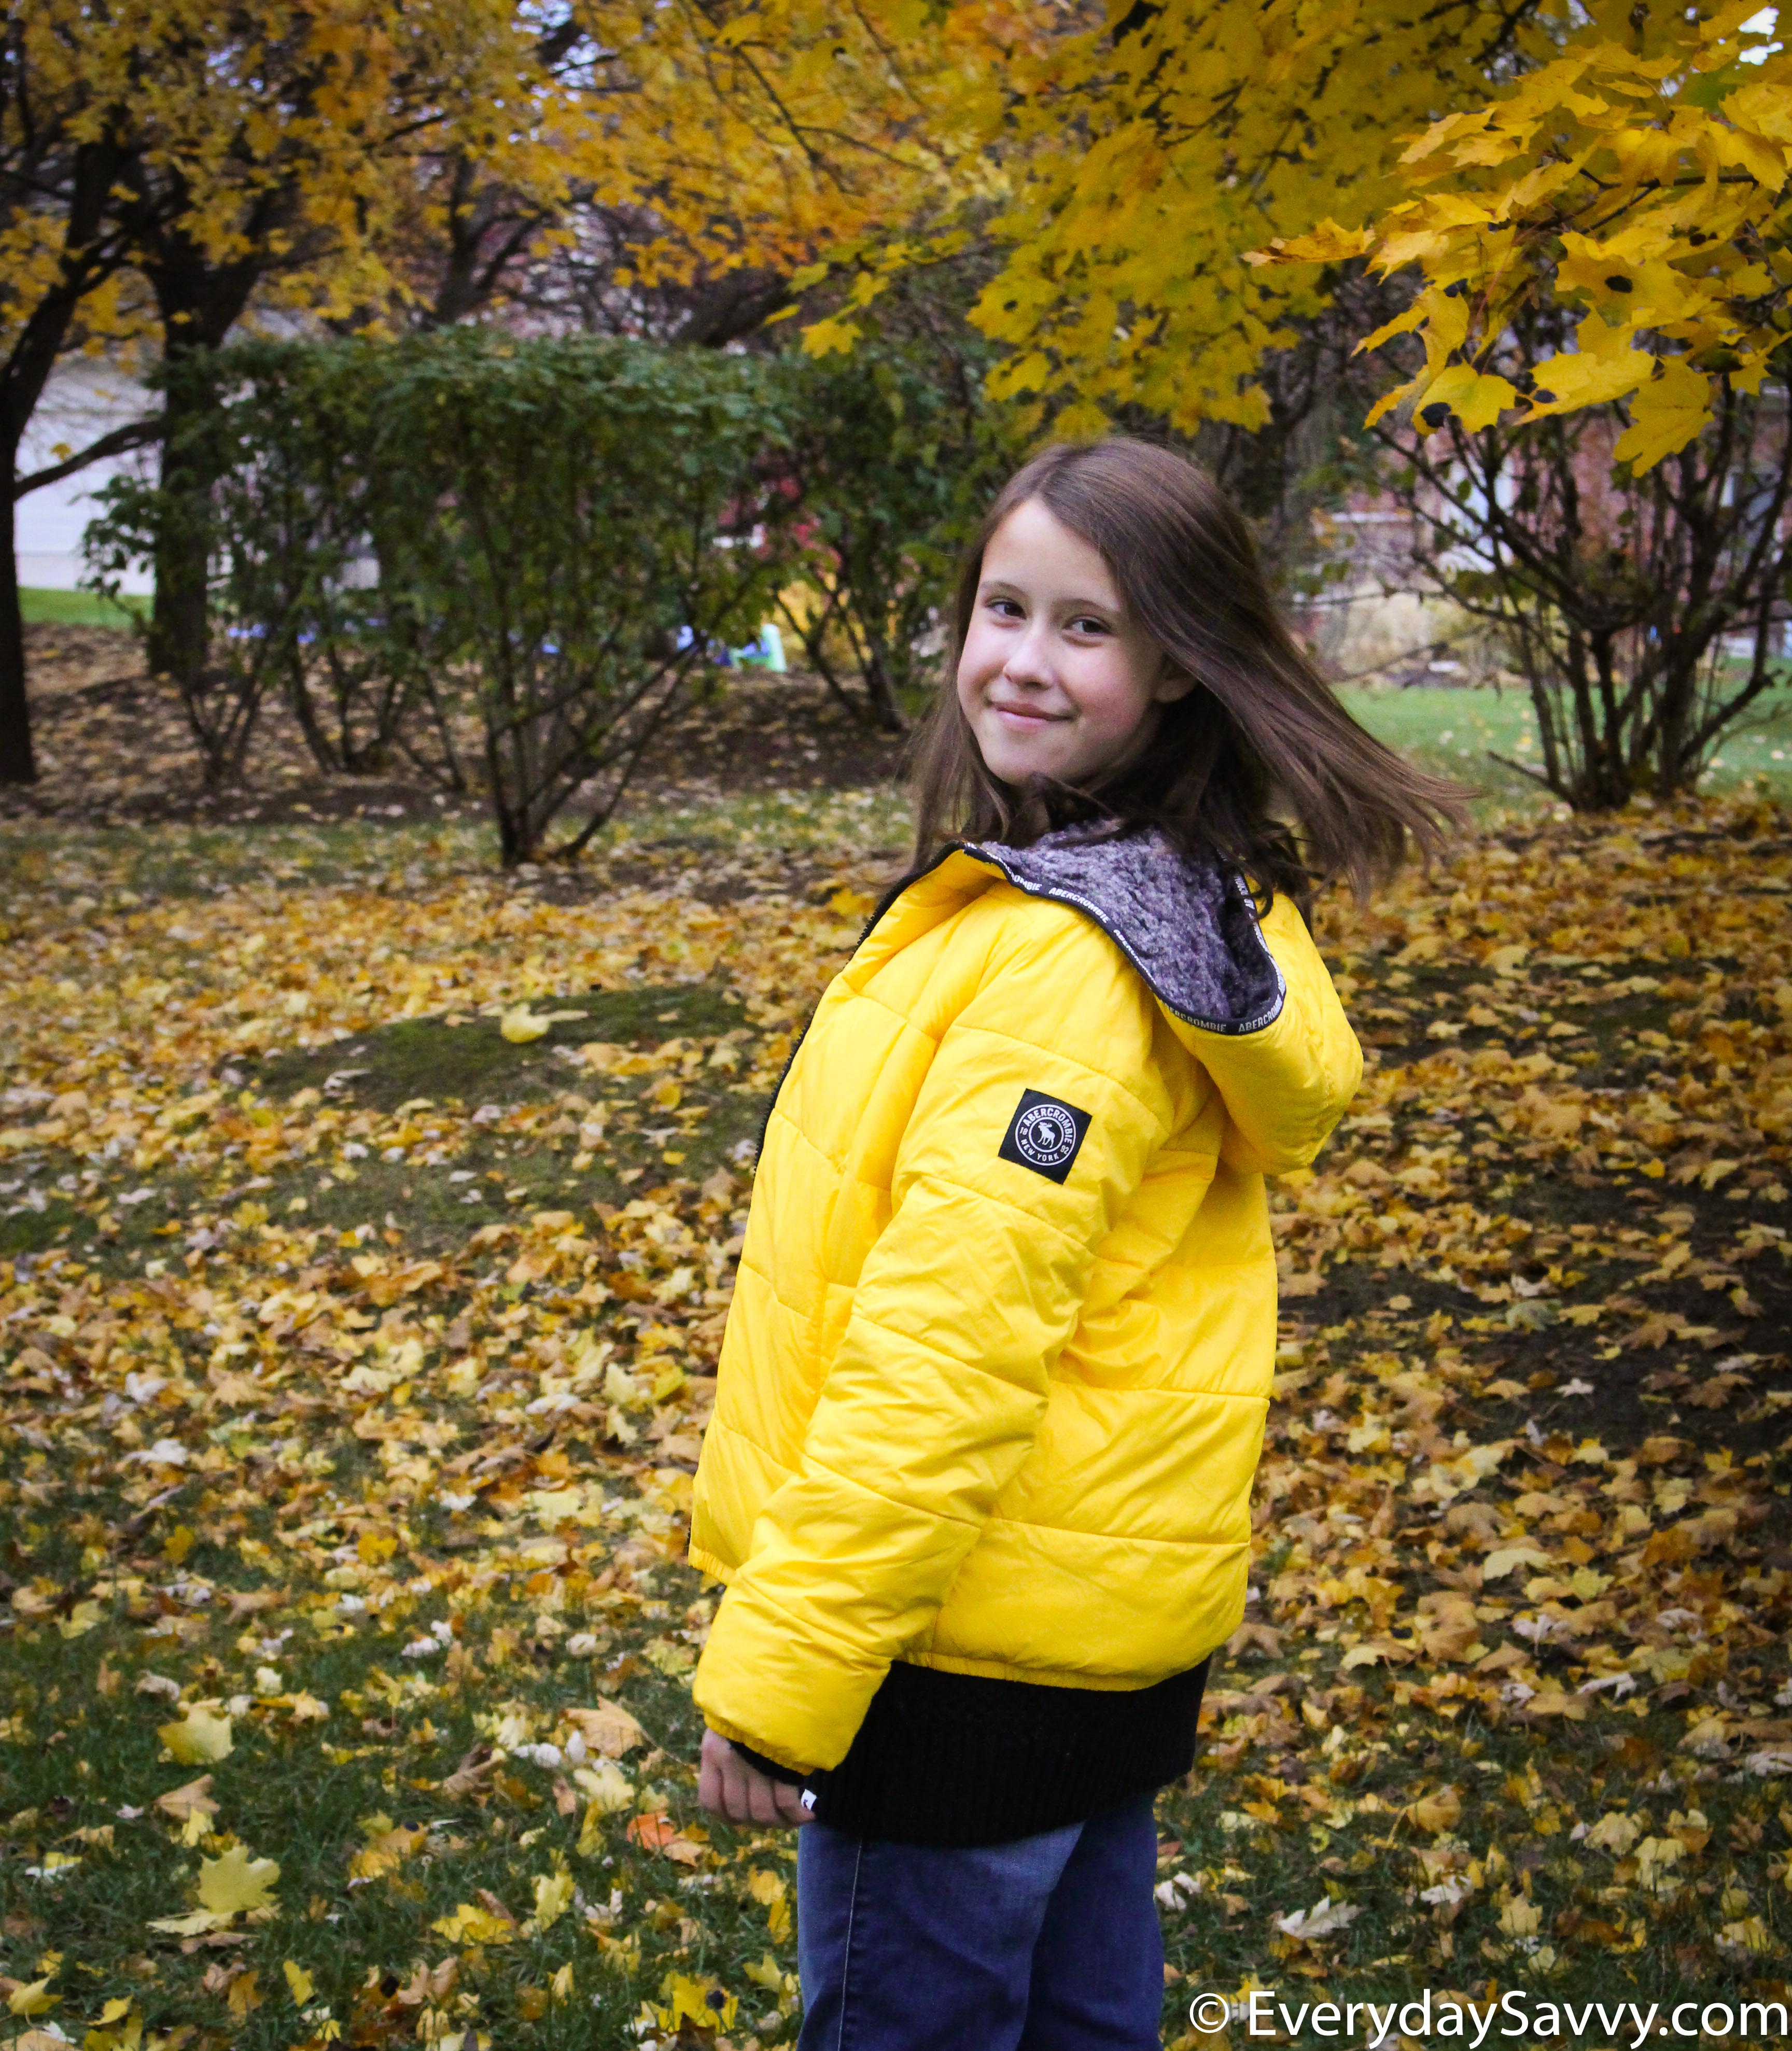 cozy winter jacket with faux fur lining great for tweens - girls and boys